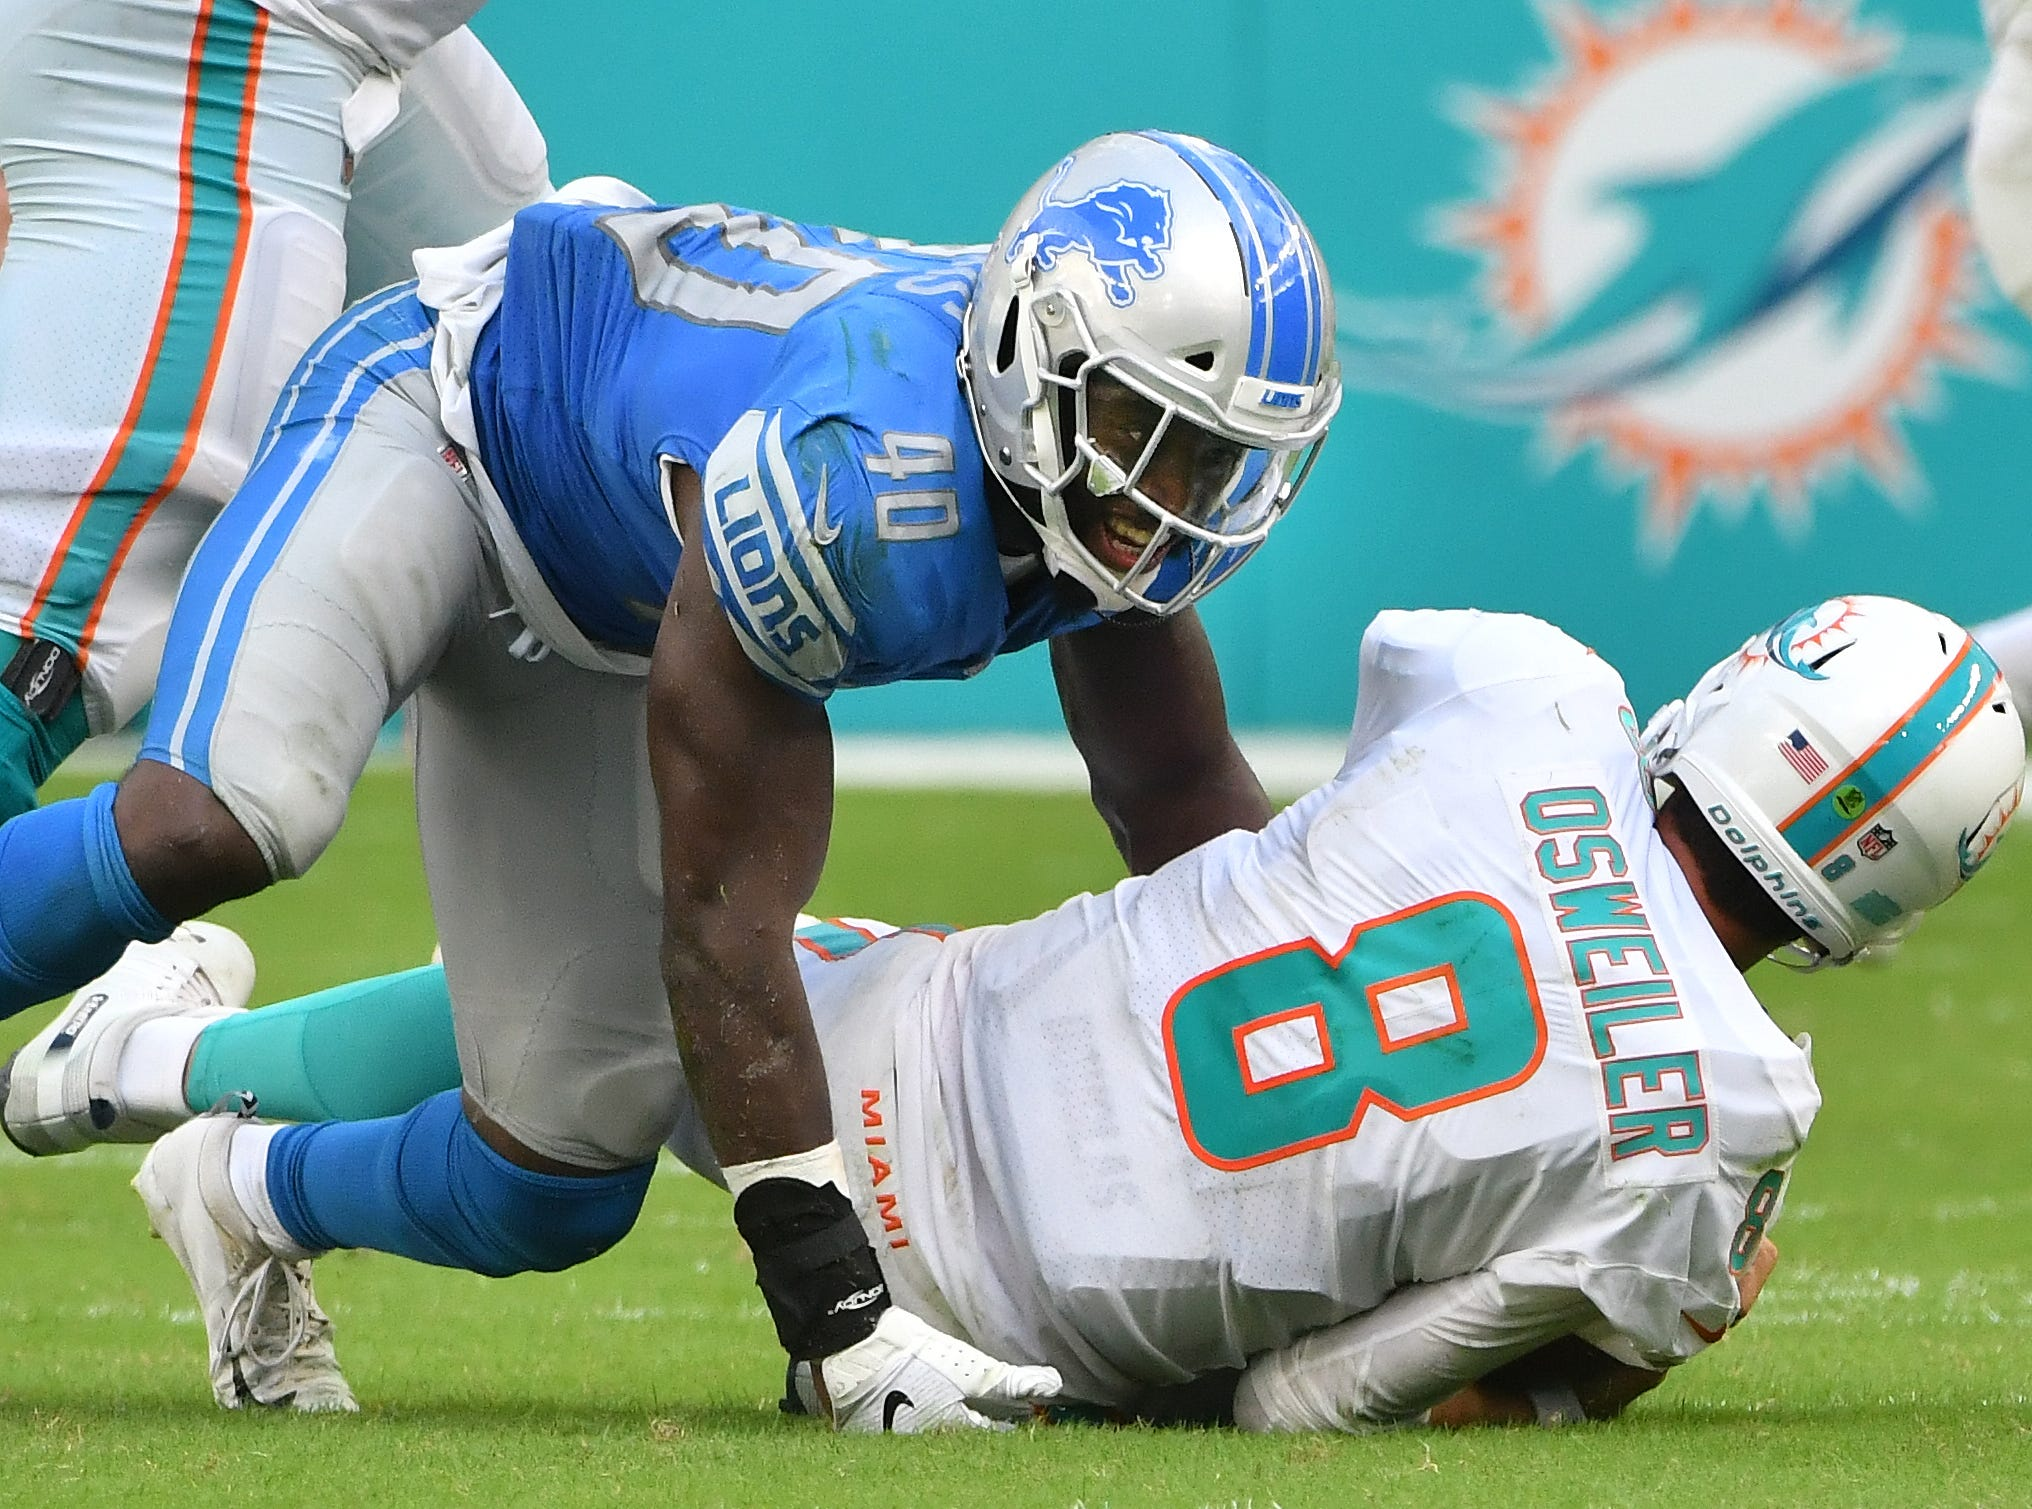 LB Jarrad Davis: Davis made unquestionable improvements in 2018, both in coverage and as a pass rusher. When blitzing, there wasn't anyone better in the league at getting pressure. He managed to translate that into six sacks. Where Davis' performance continues to lag behind is defending the run. He remains inconsistent shedding blocks and with his pursuit angles, leading to too many missed tackles. Harrison's addition to the lineup helped, and if that chemistry continues to develop into next season, there's potential for Davis' game to take off. Grade: C+